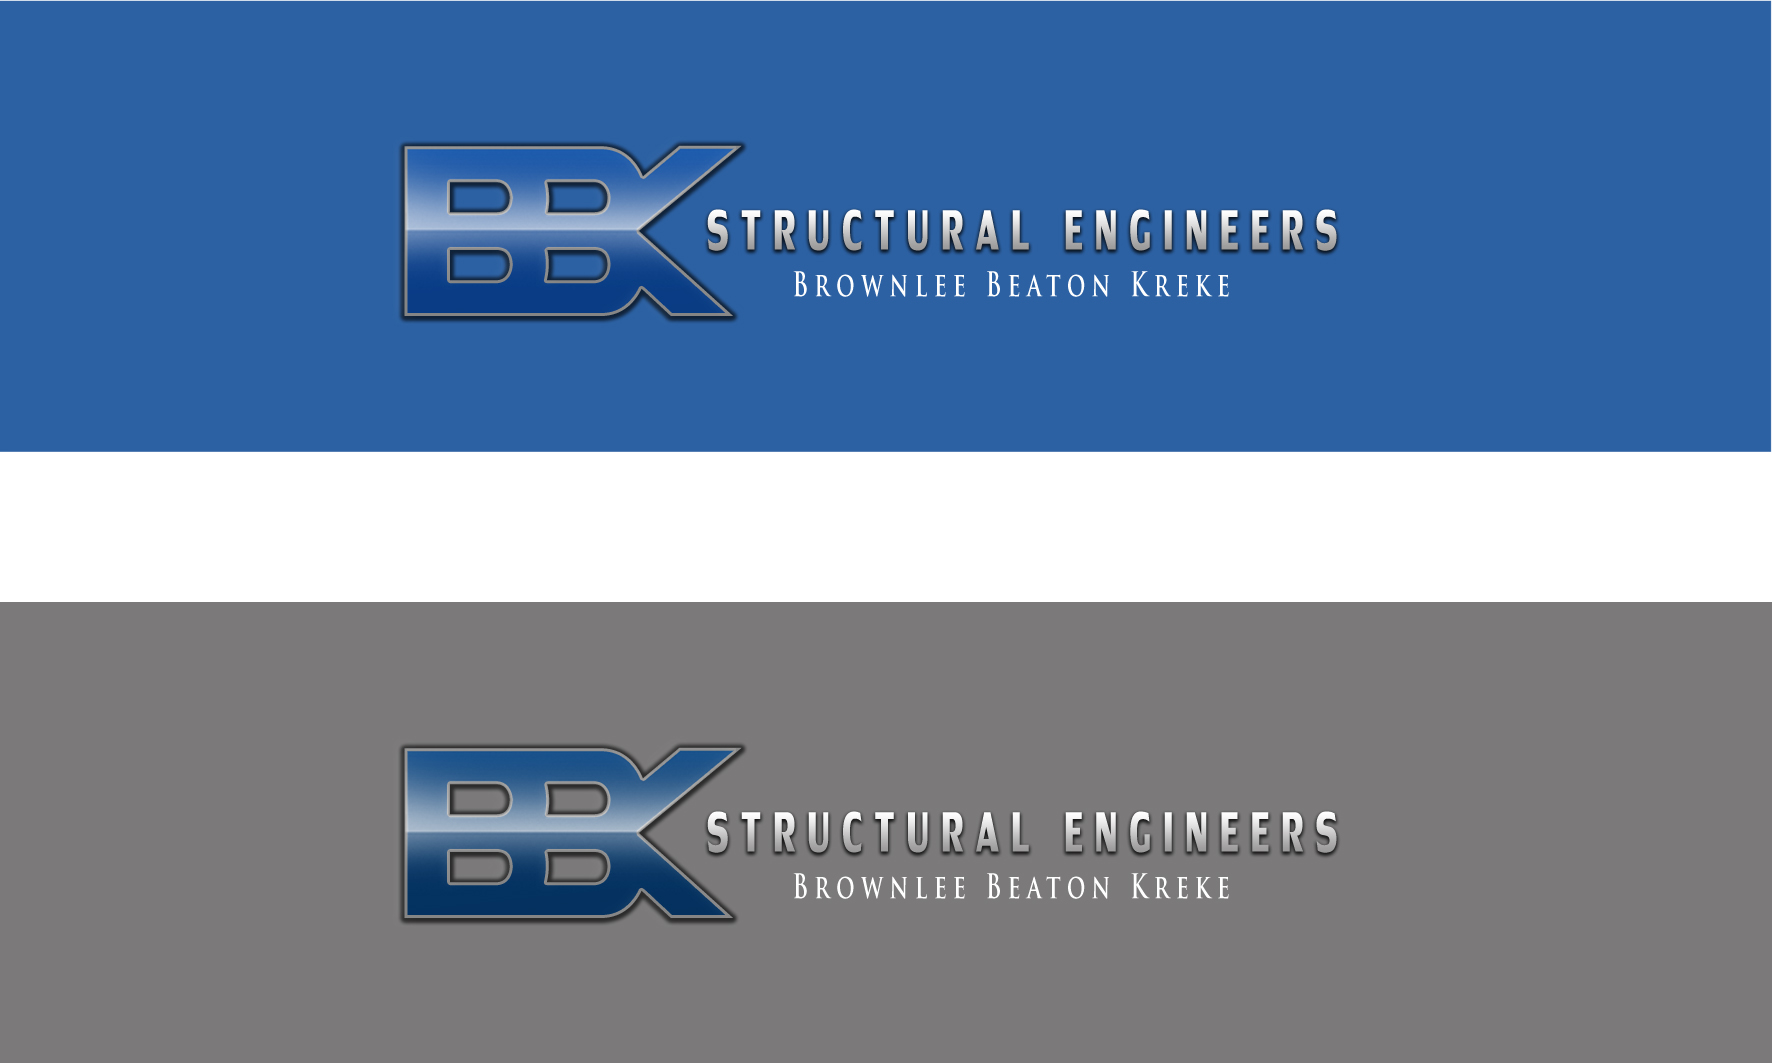 Logo Design by 3draw - Entry No. 54 in the Logo Design Contest Logo Design Needed for Exciting New Company BBK Consulting Engineers.